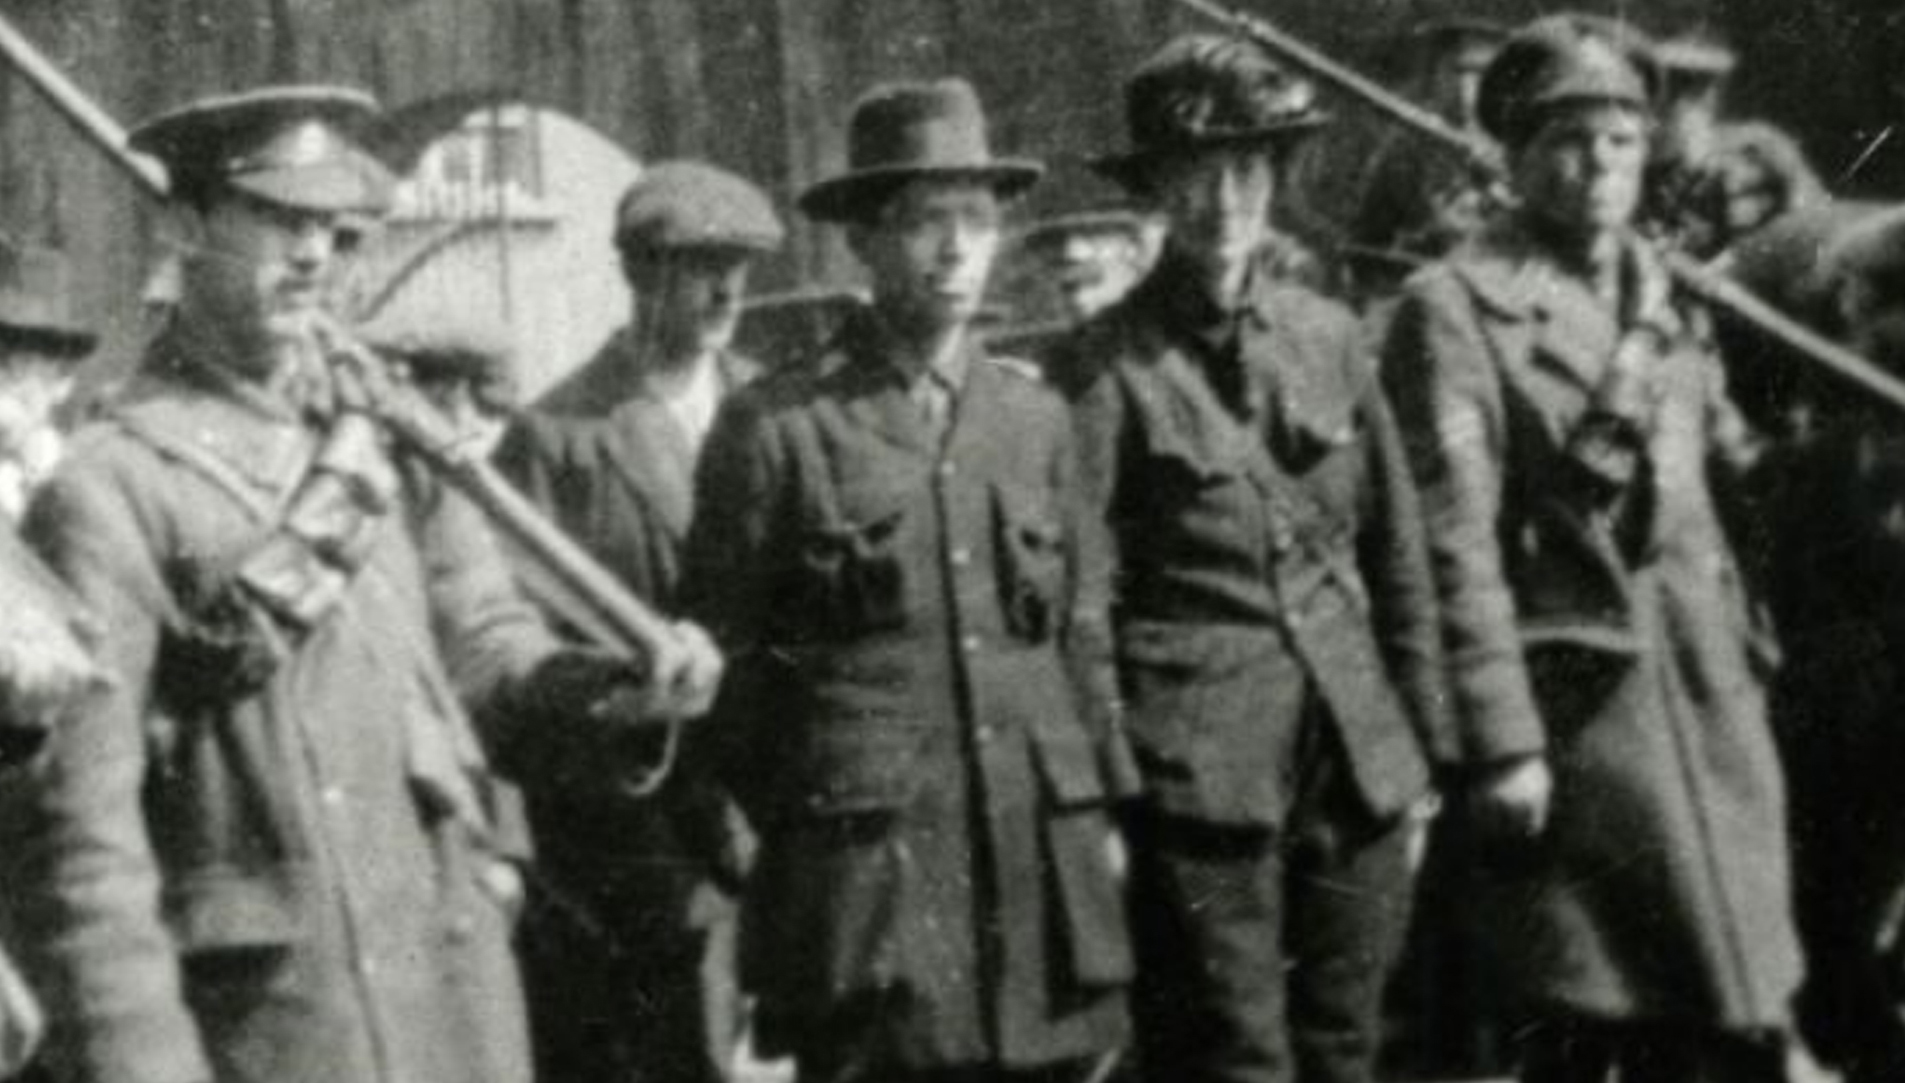 We do not have any photographs of Frederick, however this photograph shows Countess Markievicz under arrest and being escorted by two British soldiers in what looks like the 4th Hussars uniform. It is possible that Frederick could be the one on the left